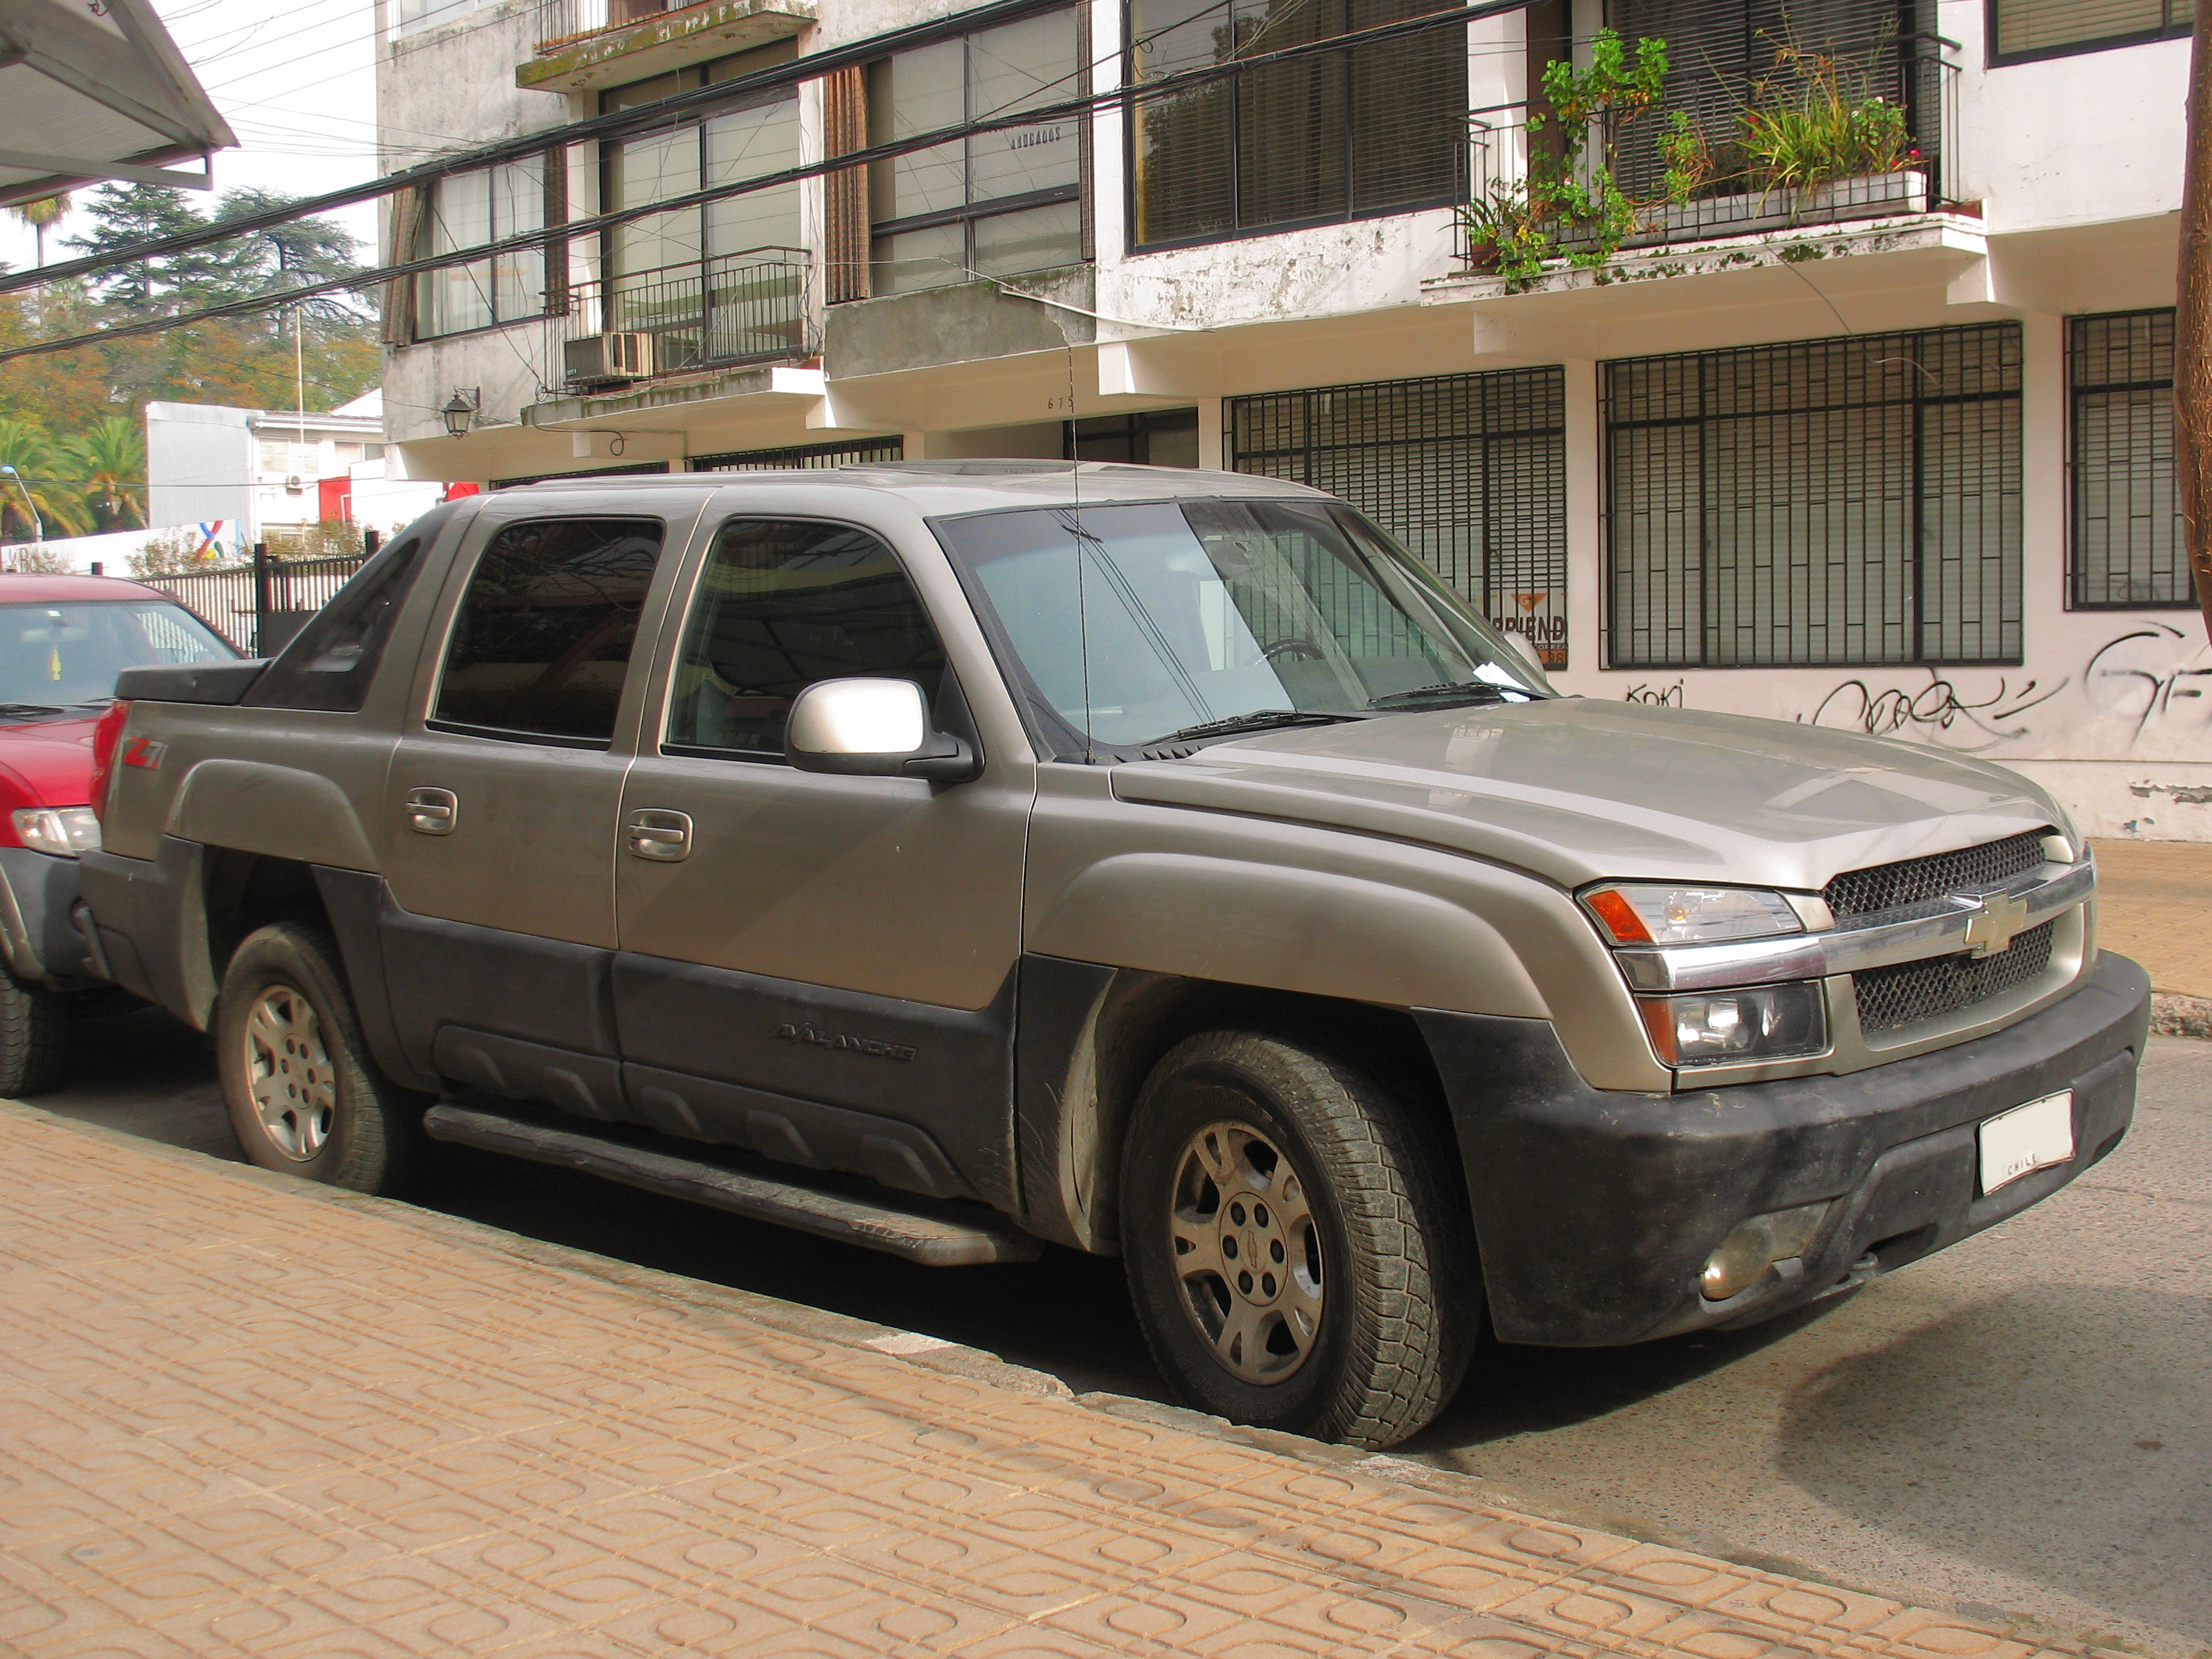 Filechevrolet avalanche lt z71 2003 14253371078g wikimedia filechevrolet avalanche lt z71 2003 14253371078g sciox Image collections